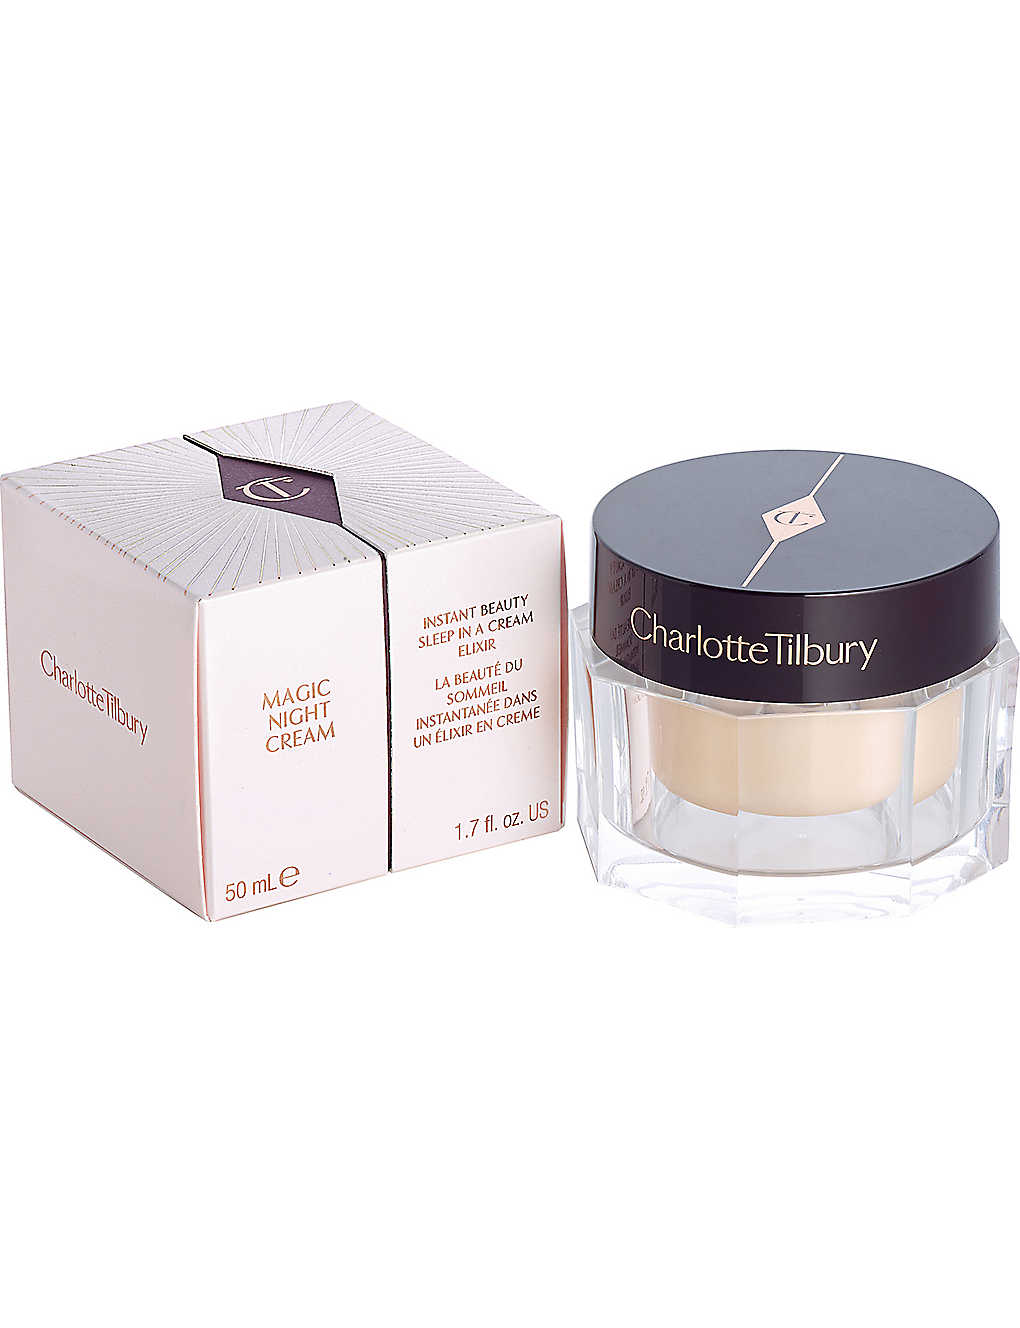 CHARLOTTE TILBURY: Magic Night Rescue Cream 50ml